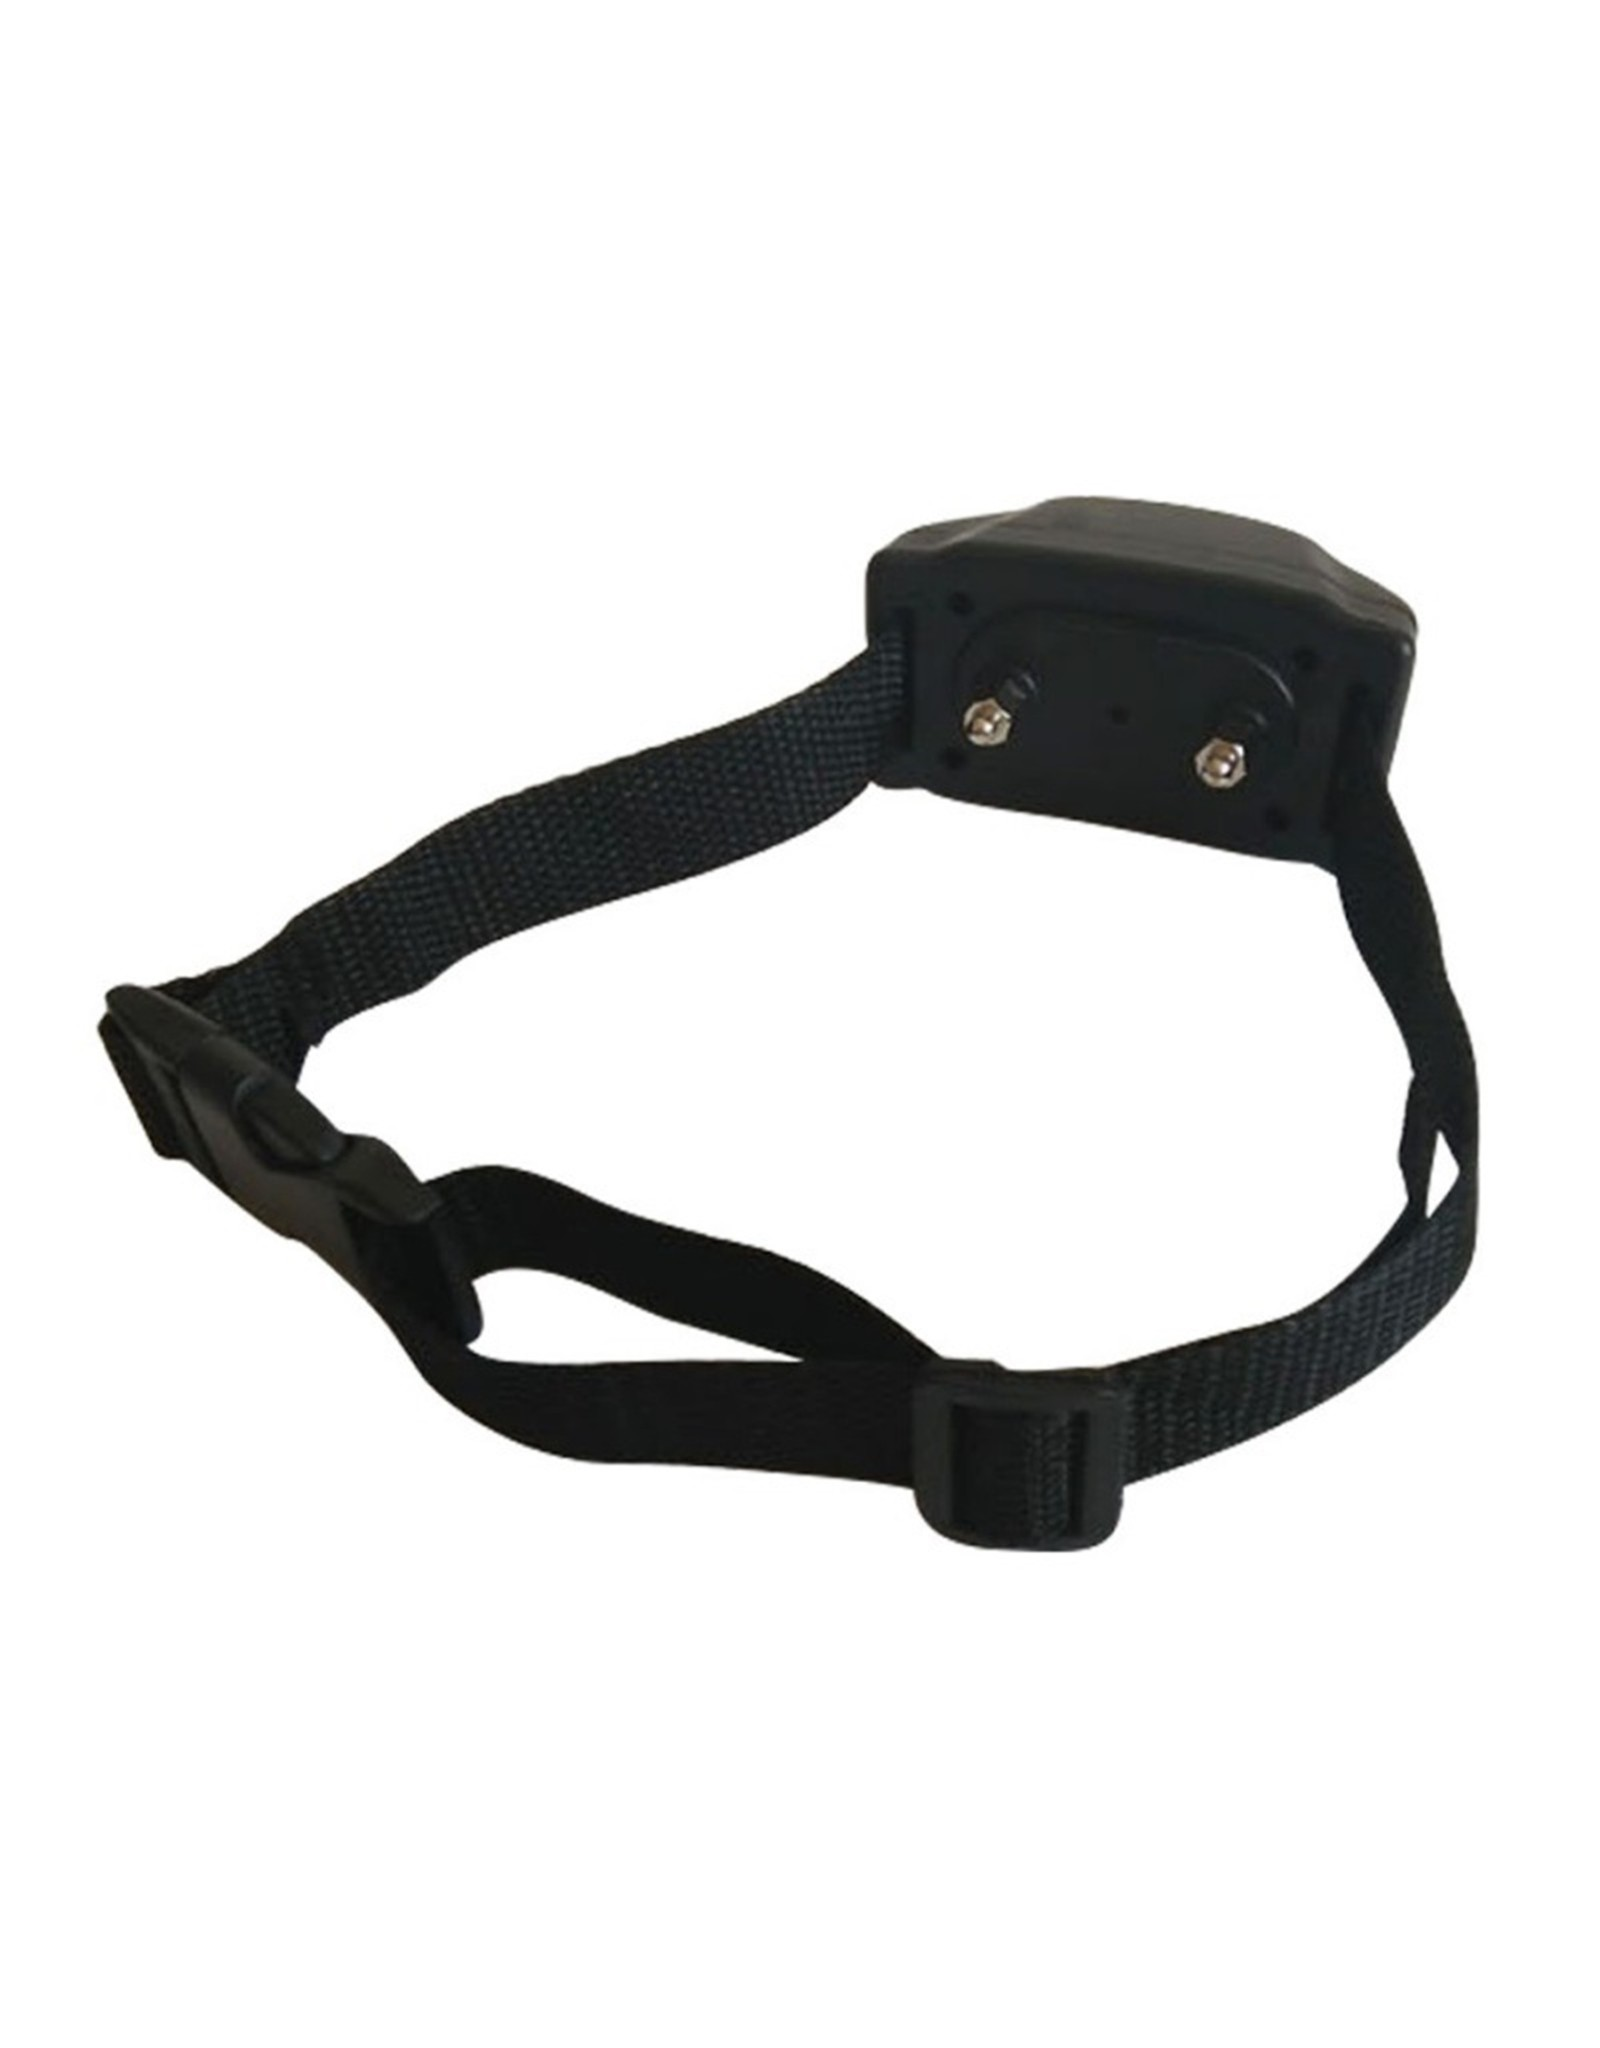 Anti-blafband – Blafband – Stroomband -  Electric halsband - 7 niveaus - 3,5 tot 55 kg  Anti Blafband - Stroomband – Blafband - 20 tot 51 cm